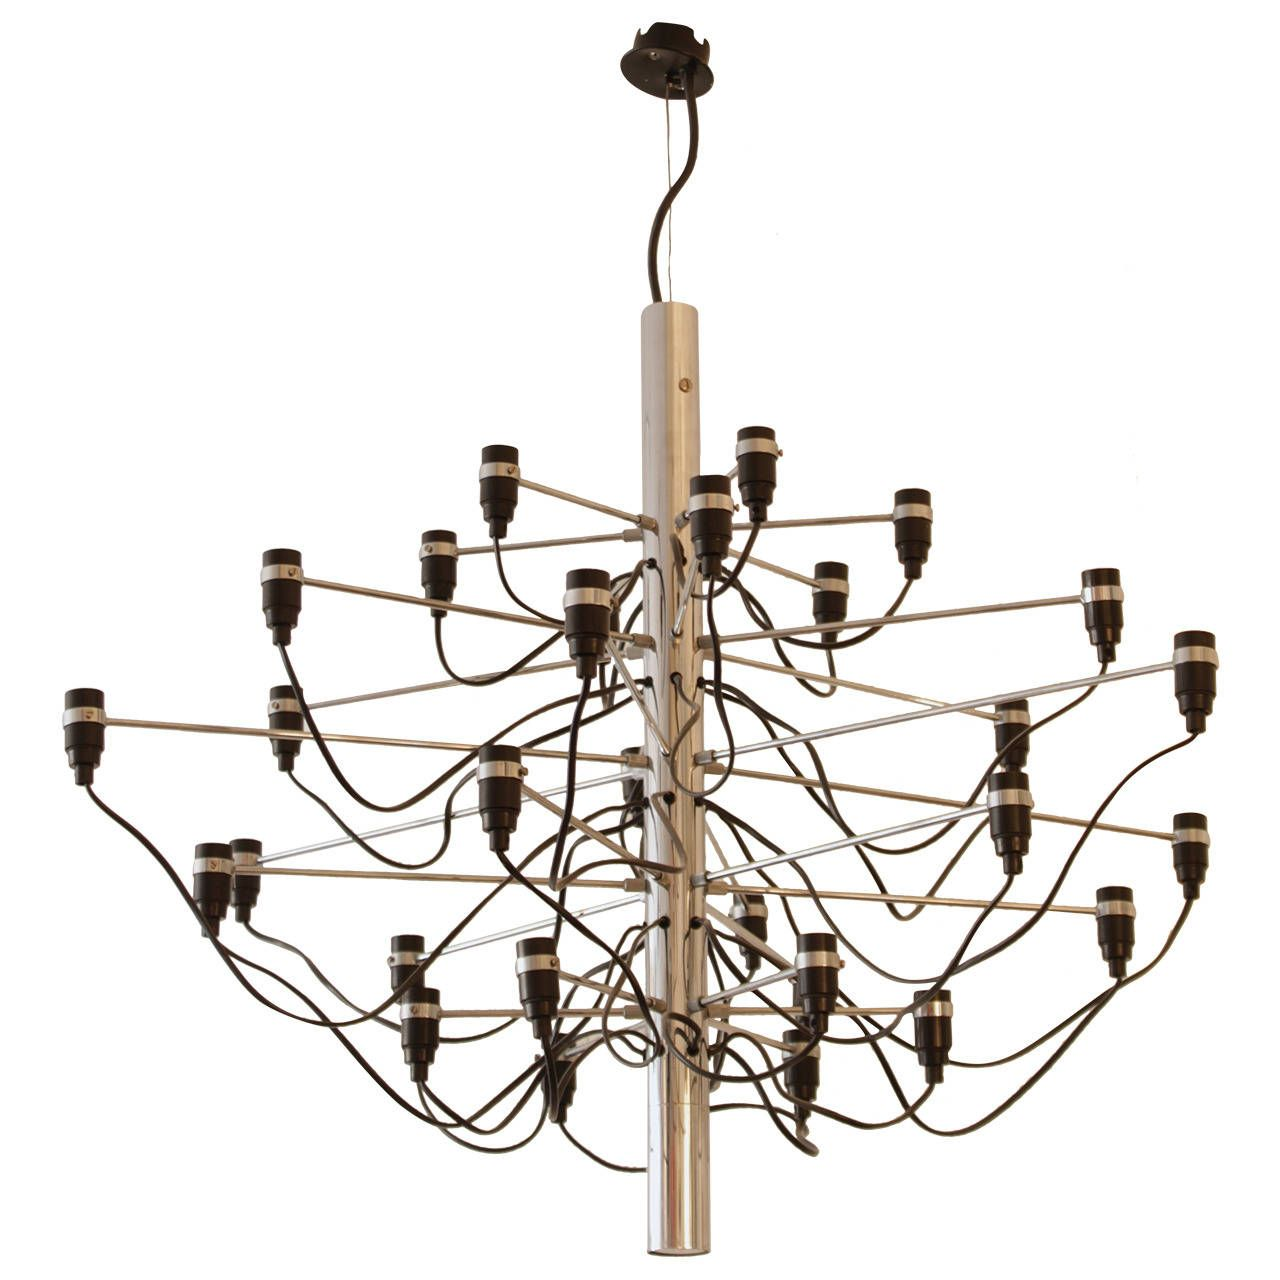 Vintage Gino Sarfatti 2097 Chandelier By Arteluce 1958 From A Unique Collection